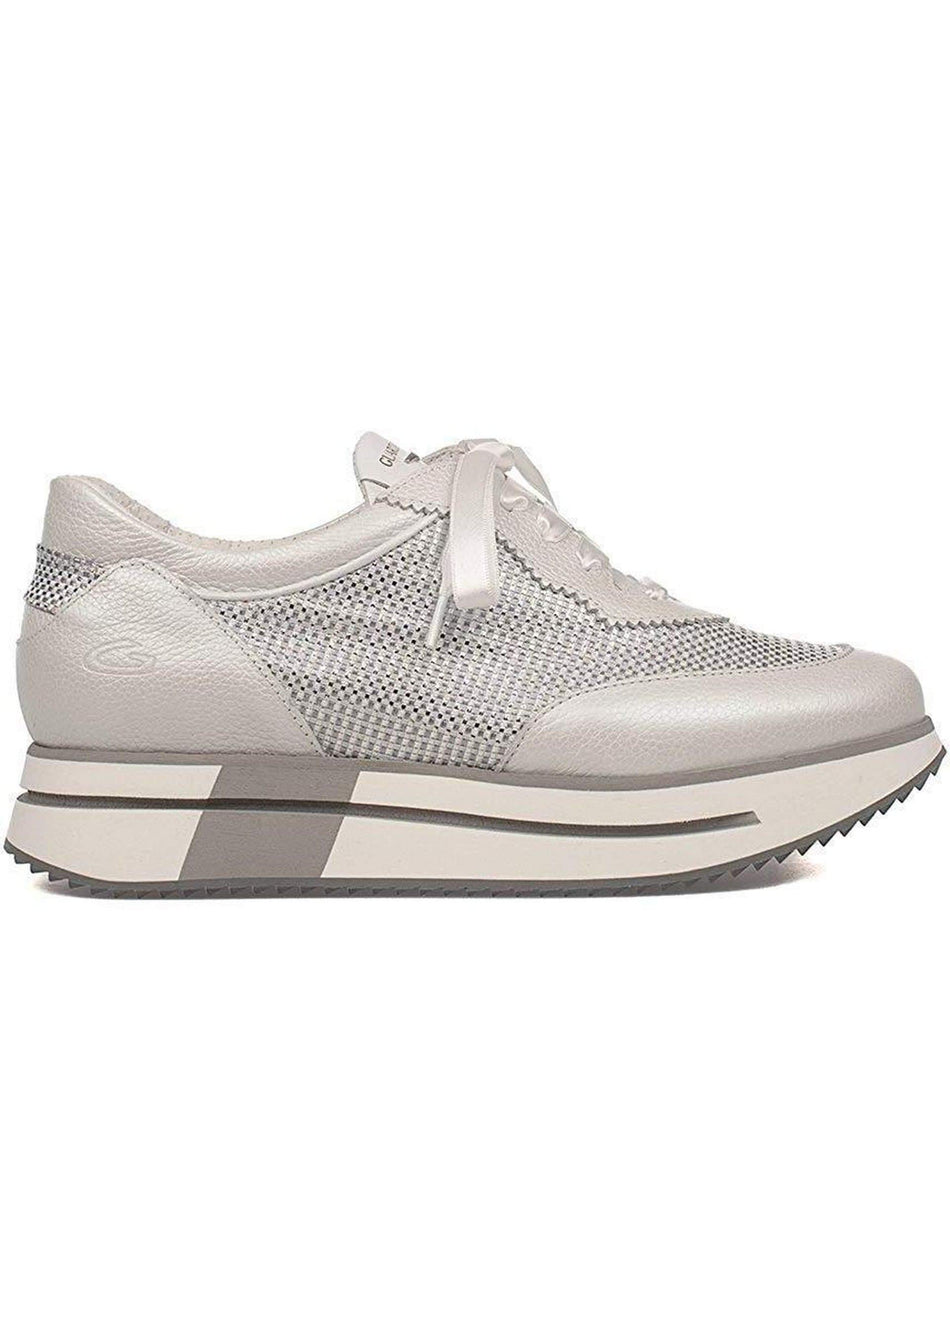 way sneaker in nappa e tessuto glitter grigio GUARDIANI - Vittorio Citro Boutique